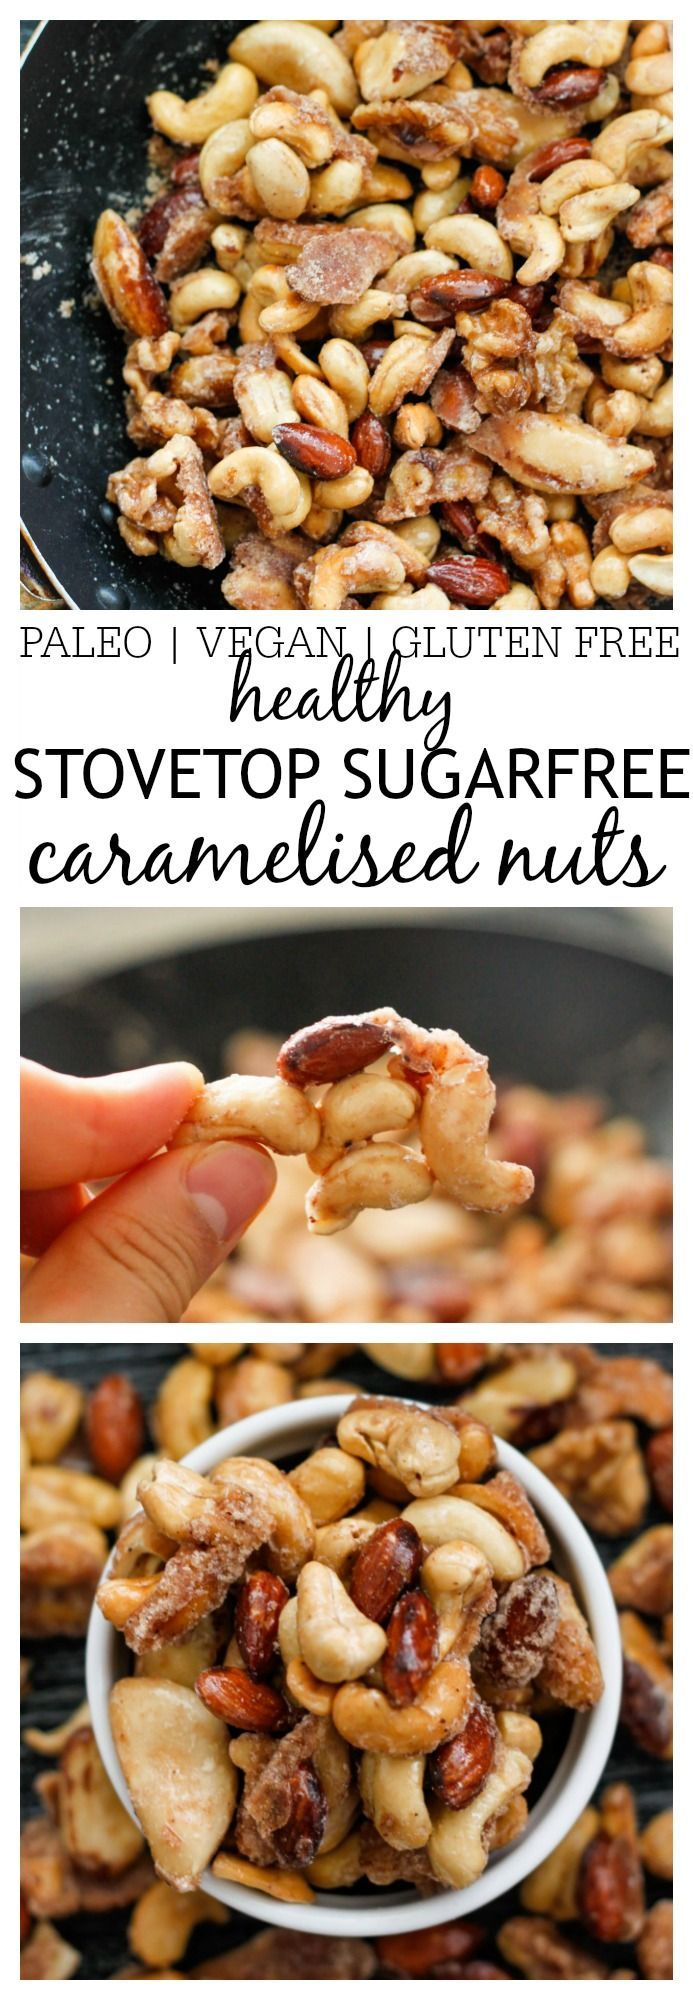 Sugar Free Stovetop Caramelised Nuts- No need to turn on your oven to whip up these caramelised nuts- They are made stovetop and take 10 minutes! Made with a paleo friendly sweetener, they are sugar free, gluten free, dairy free and vegan- Perfect for gifting or smart snacking! @thebigmansworld -thebigmansworld.com